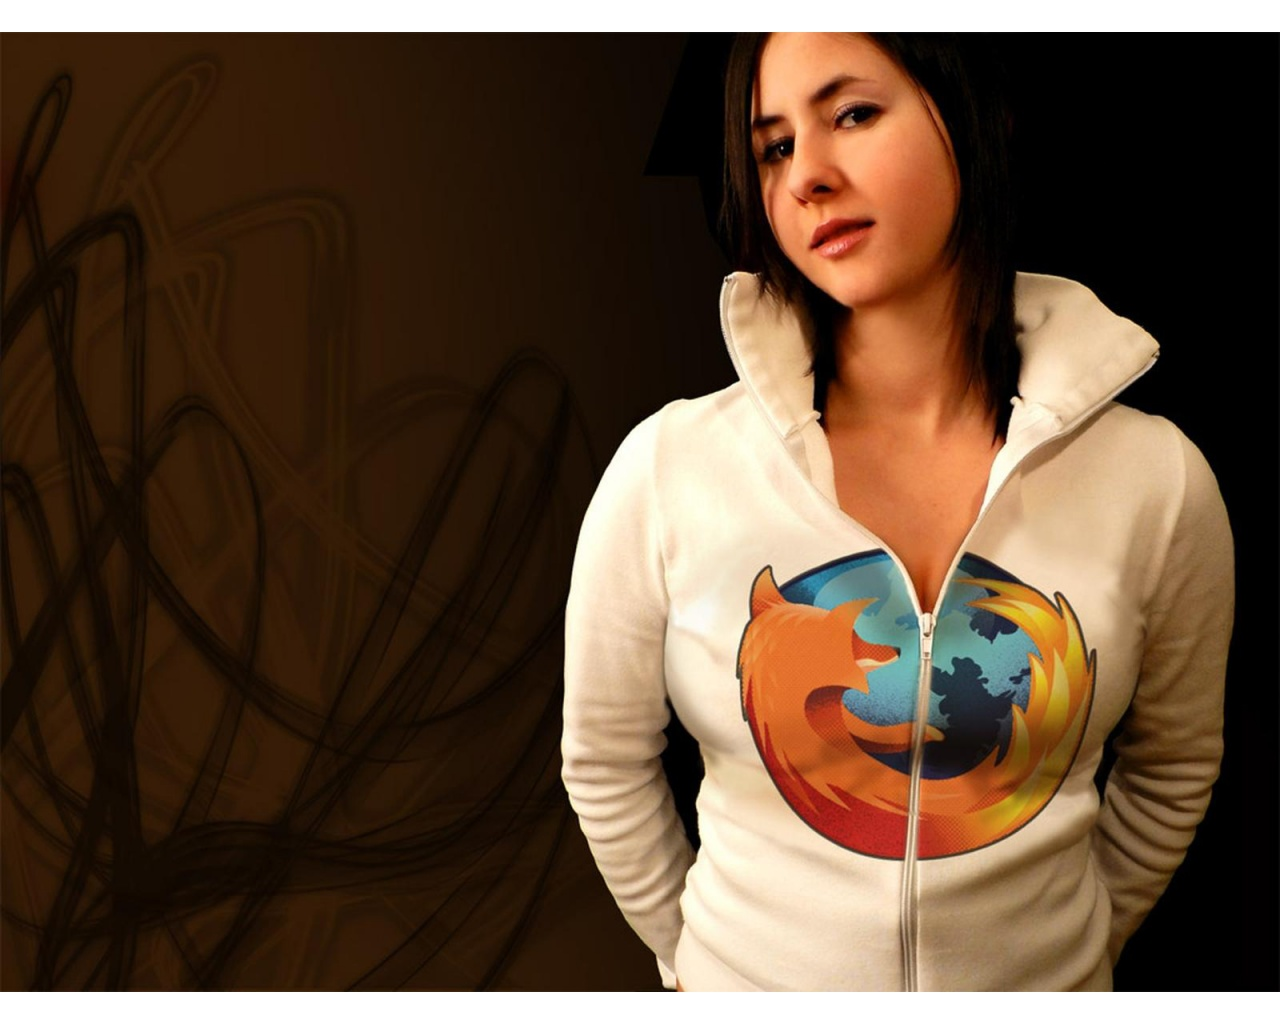 mozilla firefox logo girl wallpapers   1280x1024   213626